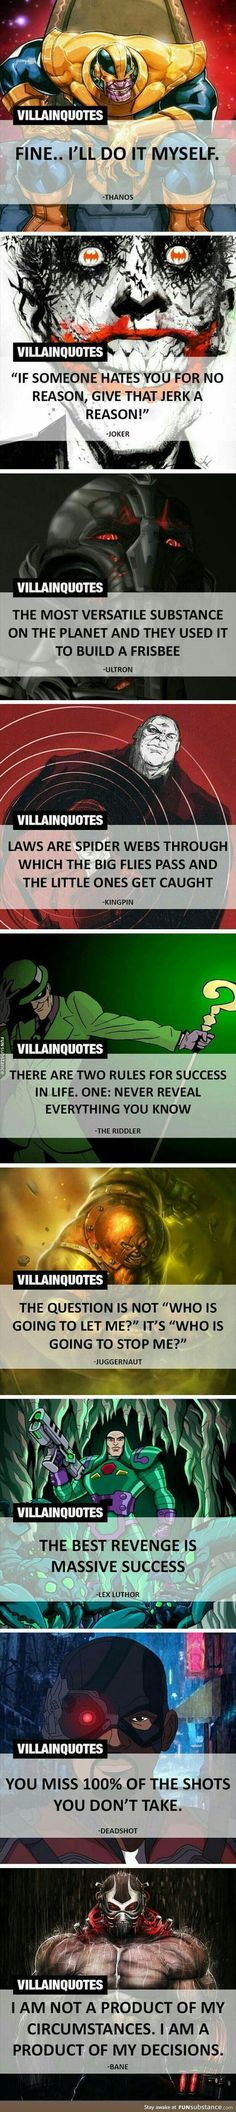 """There's a very fitting quote from on of my favourite book. """"I remember what I just do. Even if it makes me the villain of my own story"""". I think about that quite often. And these quotes are similar. why are villains villains? Because they do things Marvel Vs, Marvel Dc Comics, O Joker, Superhero Facts, Nananana Batman, Dc Memes, Battlestar Galactica, The Villain, Geek Culture"""